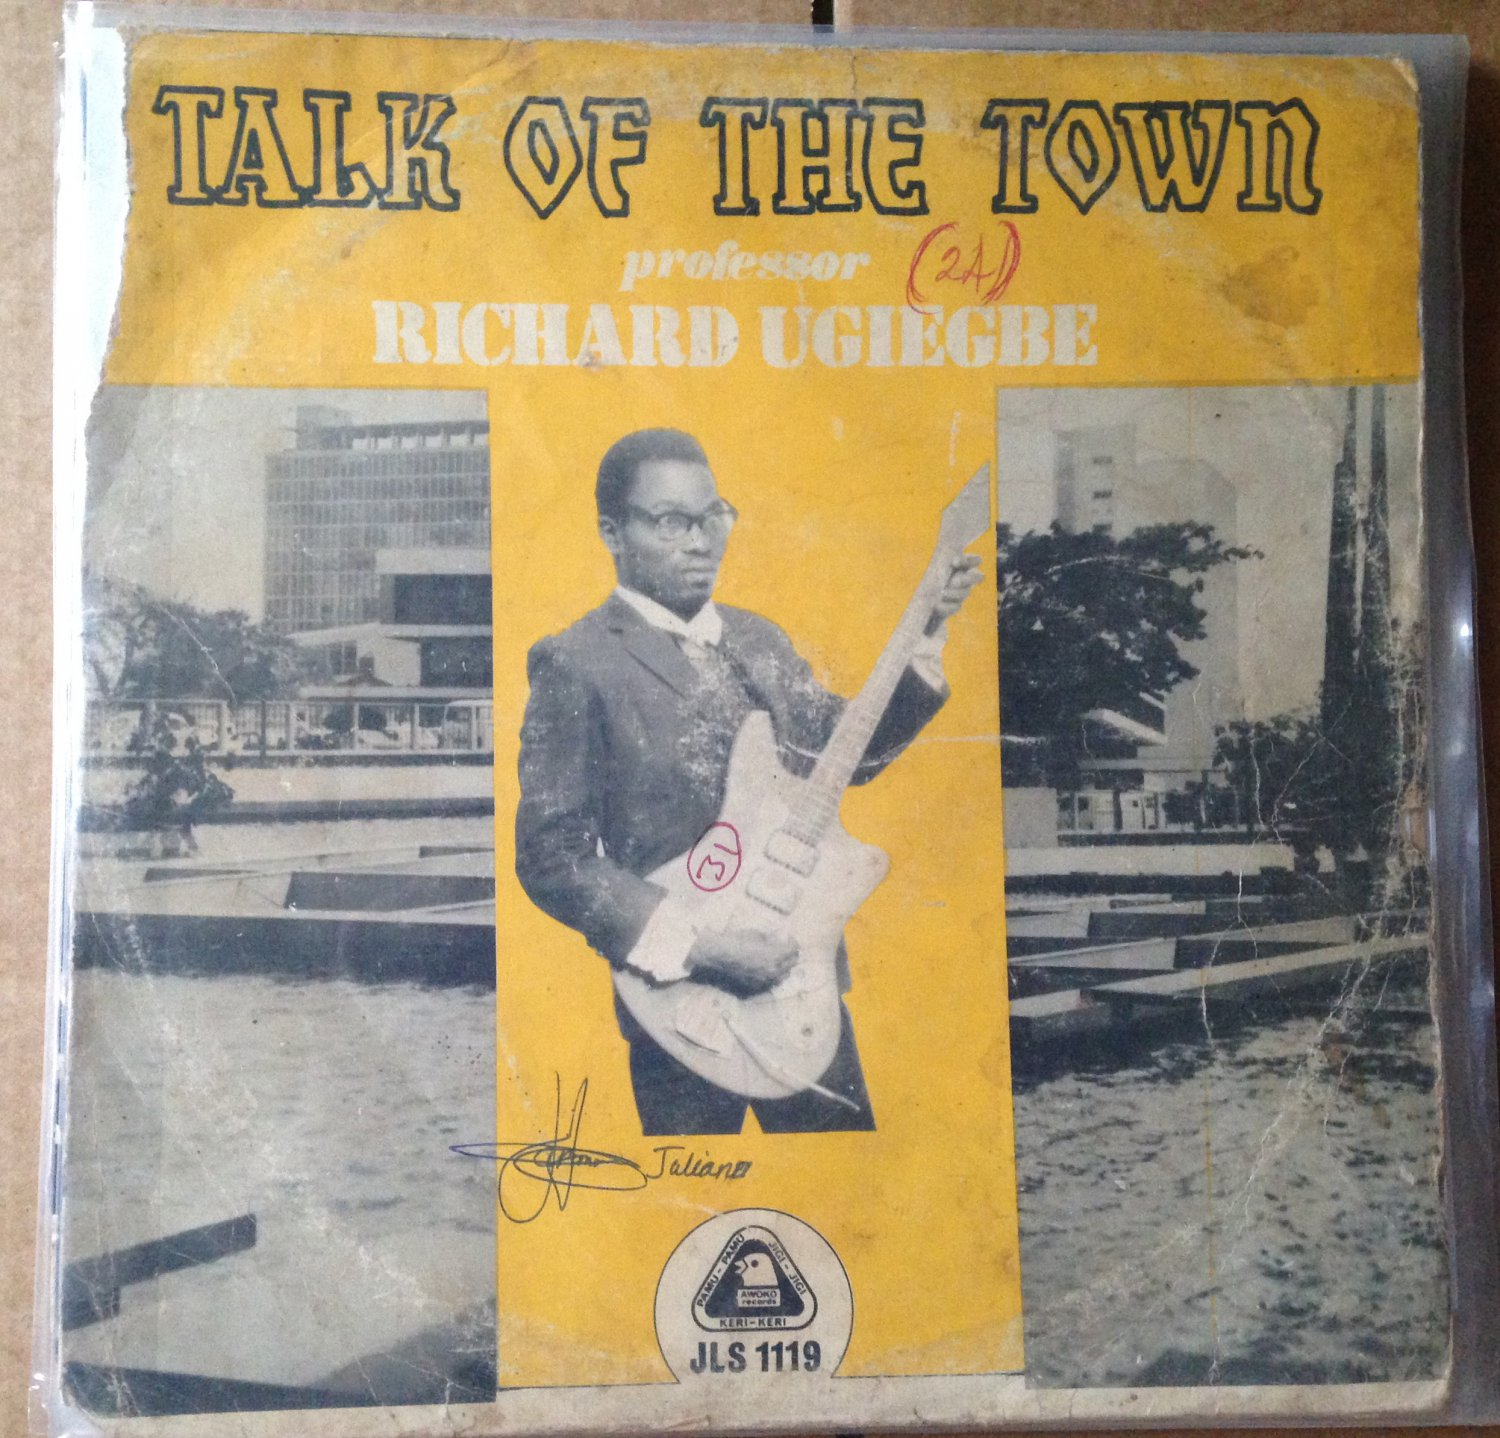 PROFESSOR RICHARD UGIEGBE LP talk of the town HIGHLIFE mp3 LISTEN